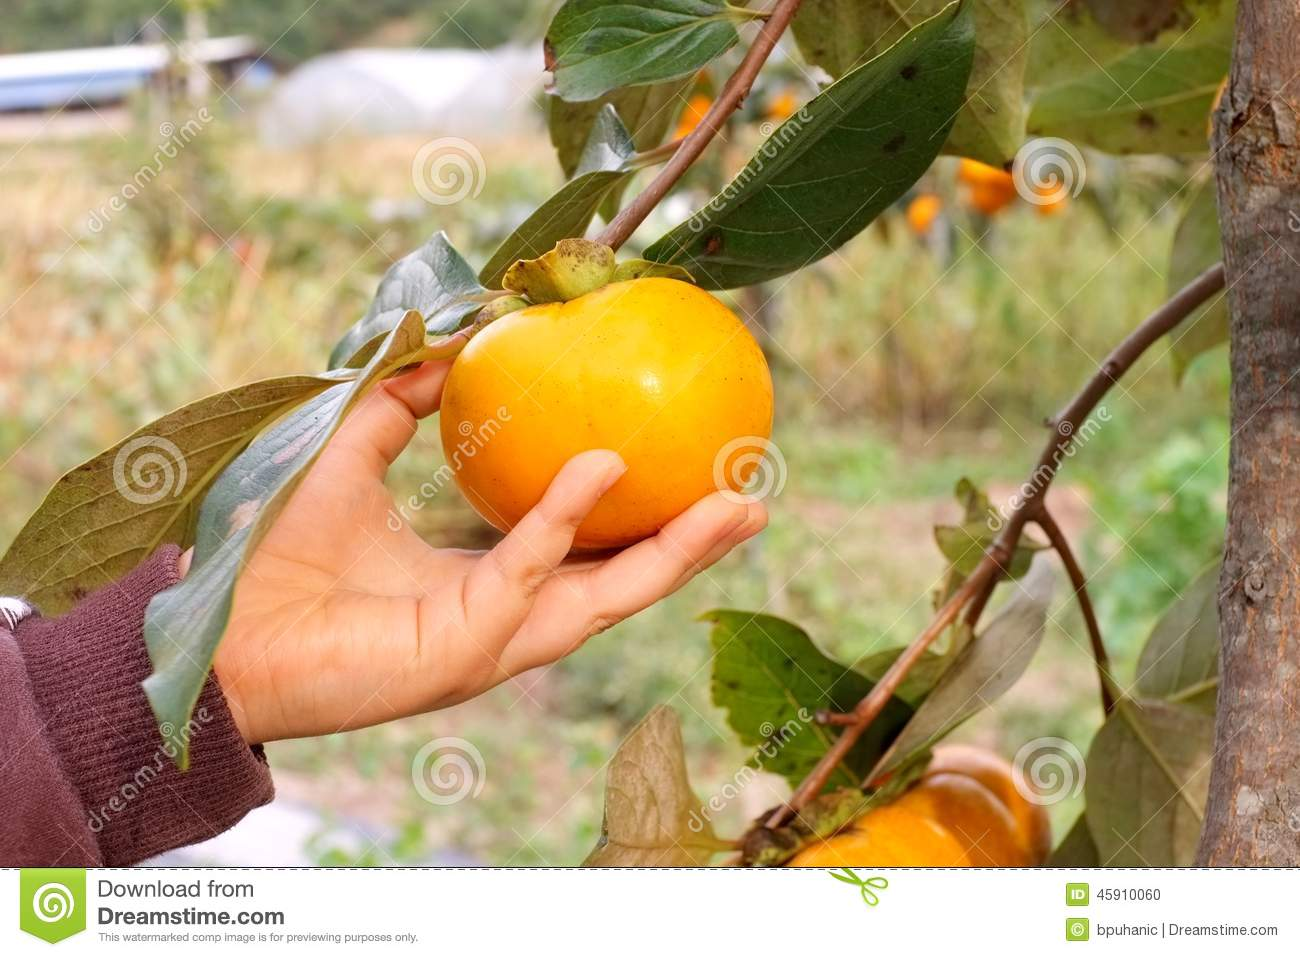 Childs hand picking persimmon from a tree